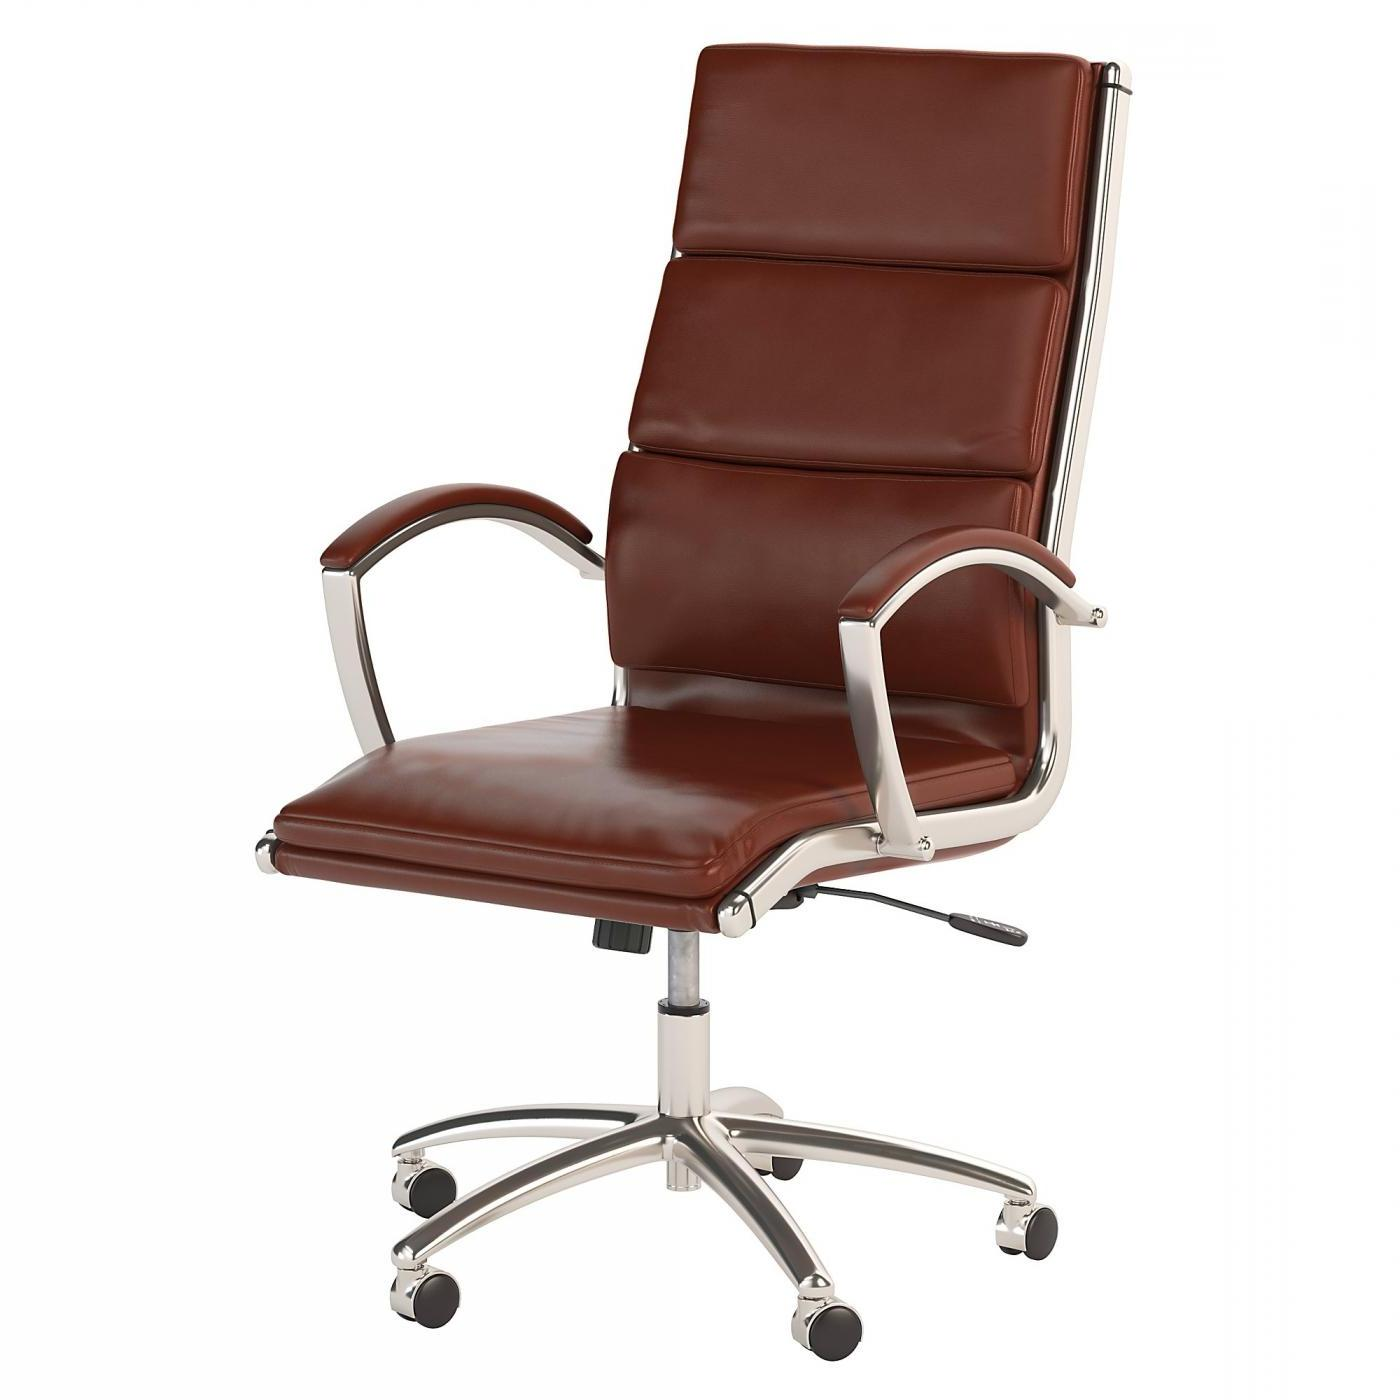 <font color=#c60><b>BUSH BUSINESS FURNITURE MODELO HIGH BACK LEATHER EXECUTIVE OFFICE CHAIR #EH-CH1701CSL-03. FREE SHIPPING:</font></b> </font></b></font></b>